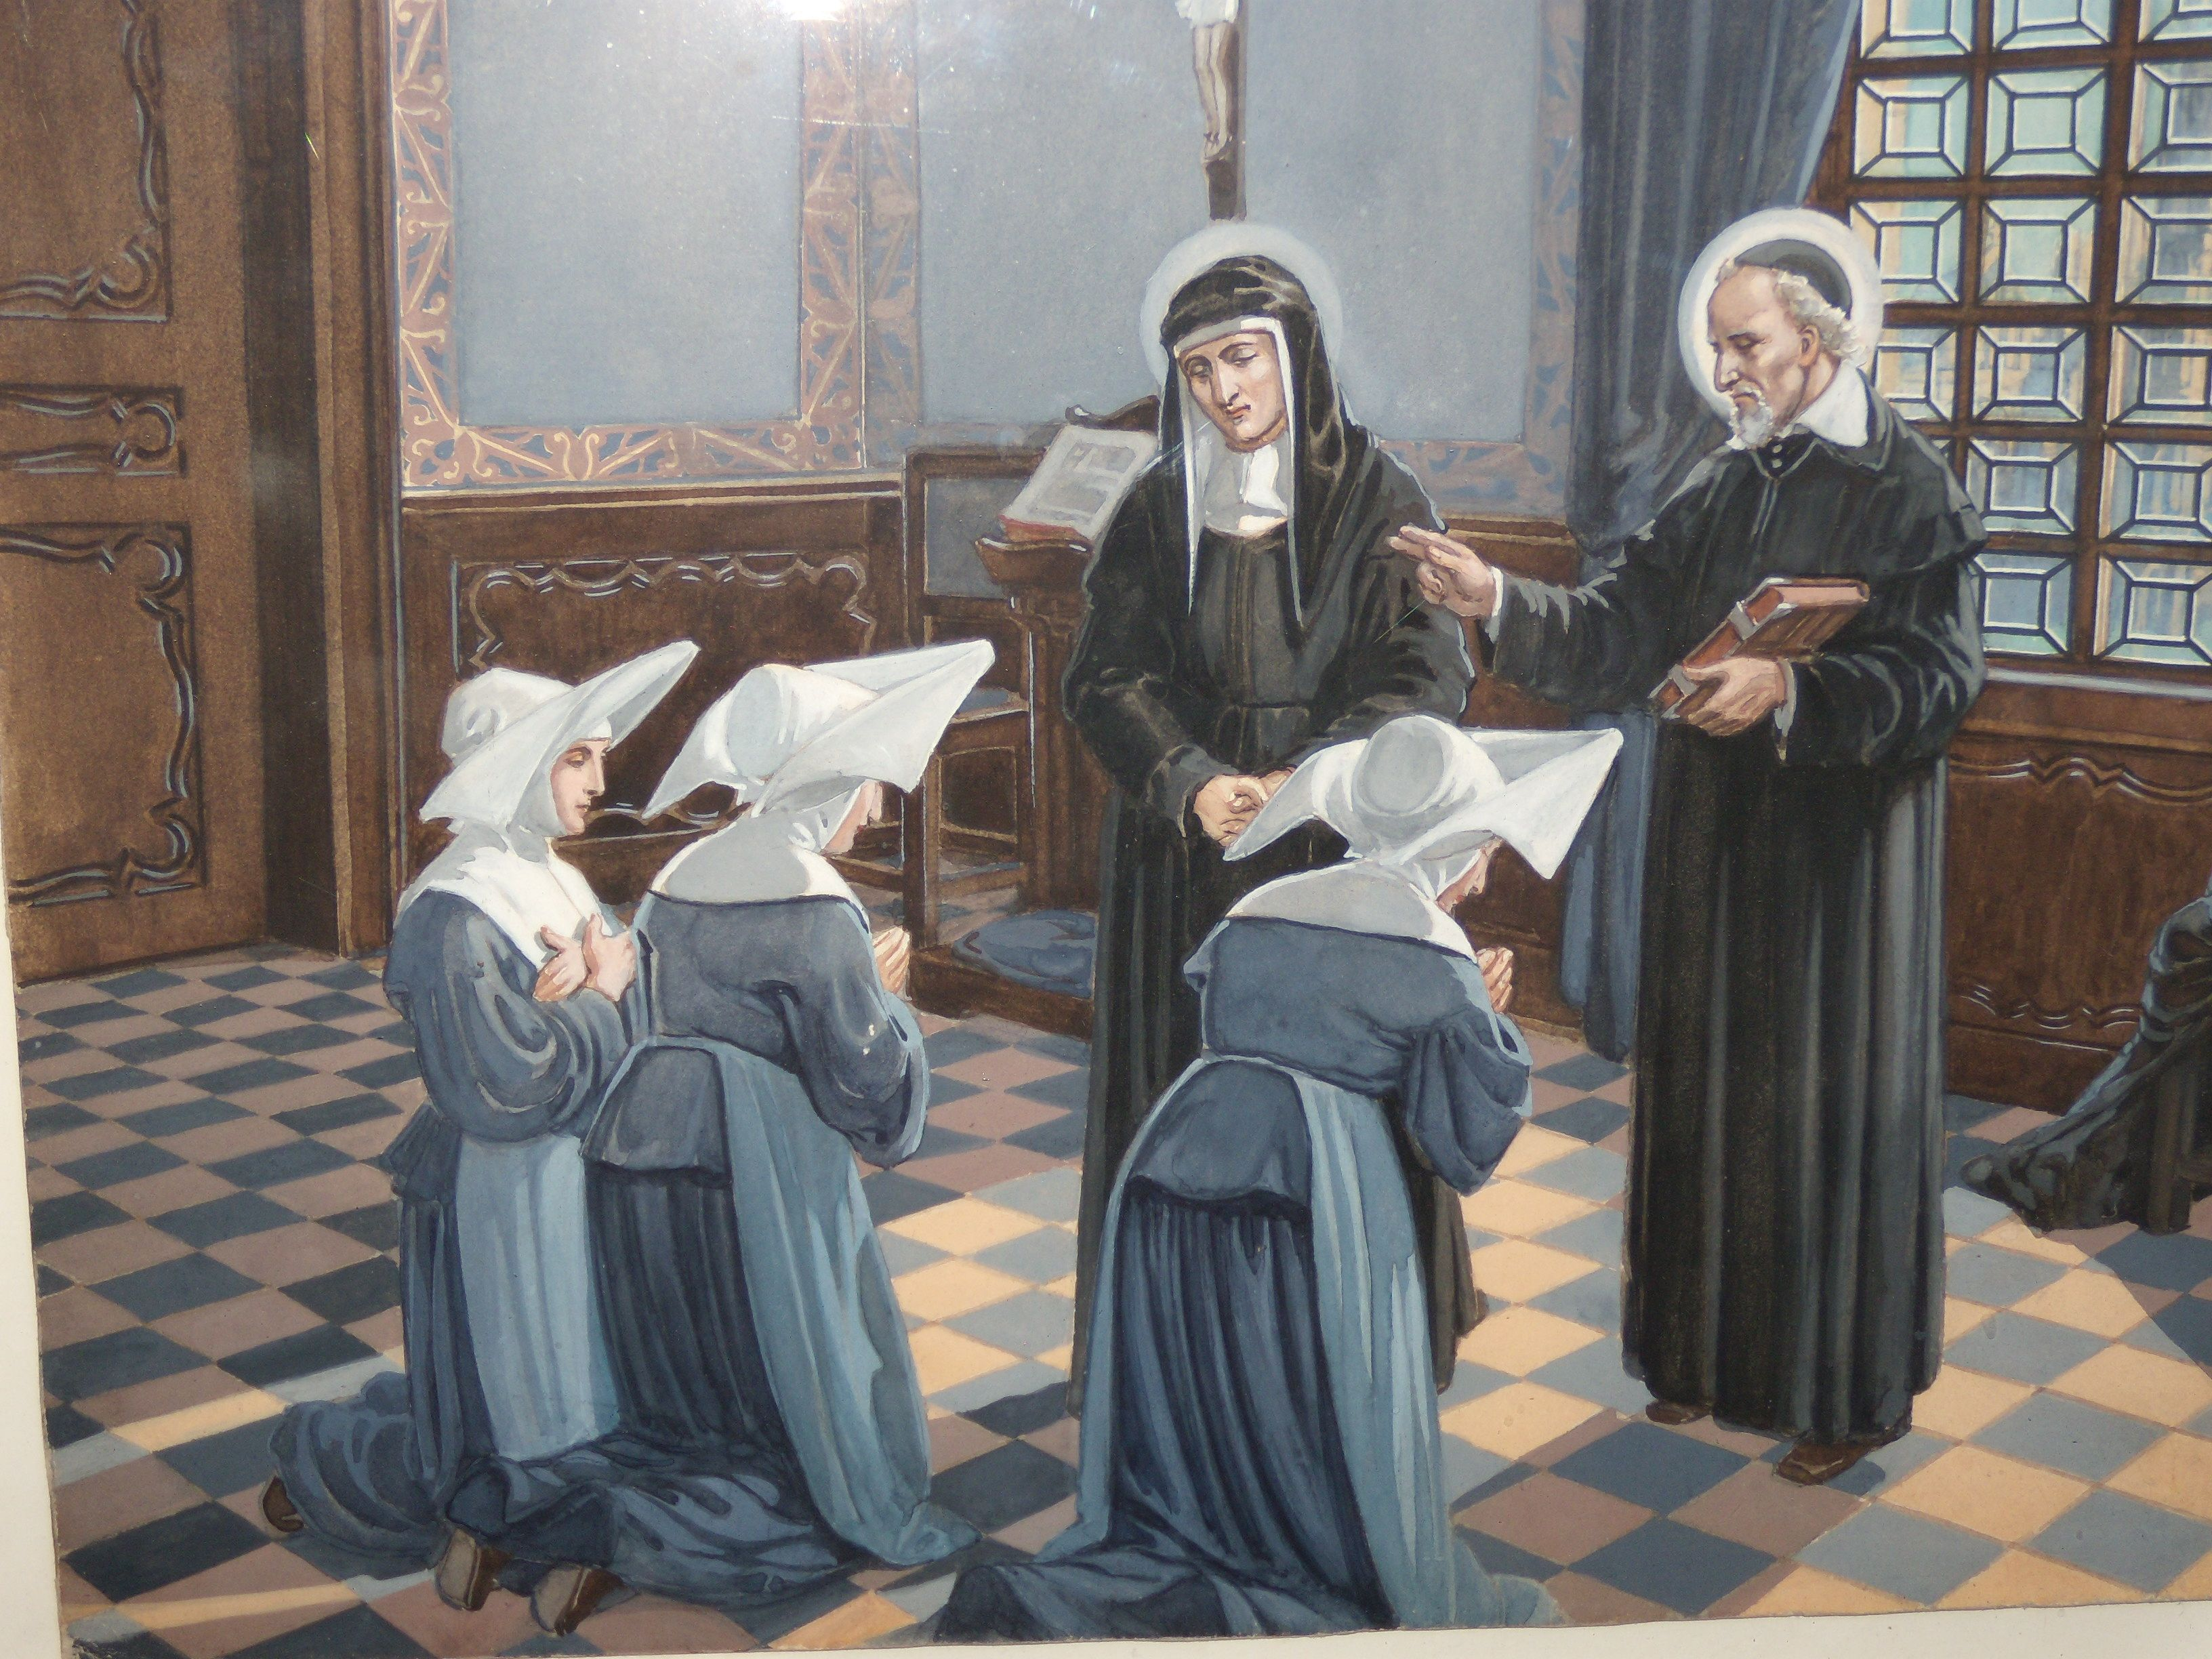 Happy anniversary! Nov. 29, 2013, marks 380 years since the foundation of the Daughters of Charity. Established by St. Vincent de Paul and St. Louise de Marillac in Paris in 1633, the Company now serves in more than 90 countries.